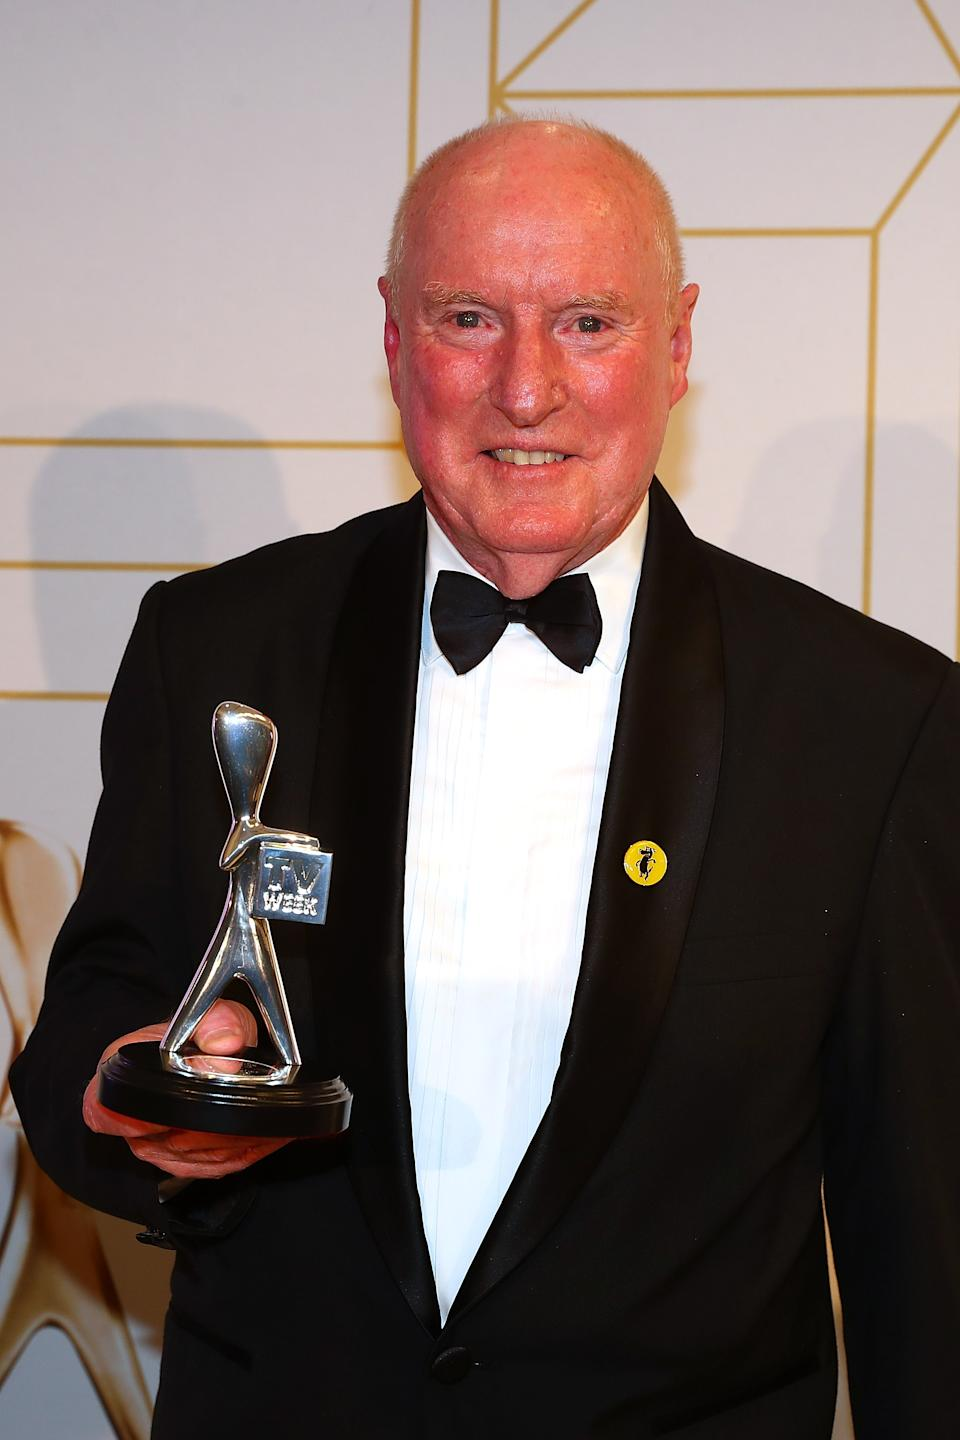 Ray Meagher poses with the award for most popular actor at the 60th Annual Logie Awards at The Star Gold Coast on July 1, 2018 in Gold Coast, Australia